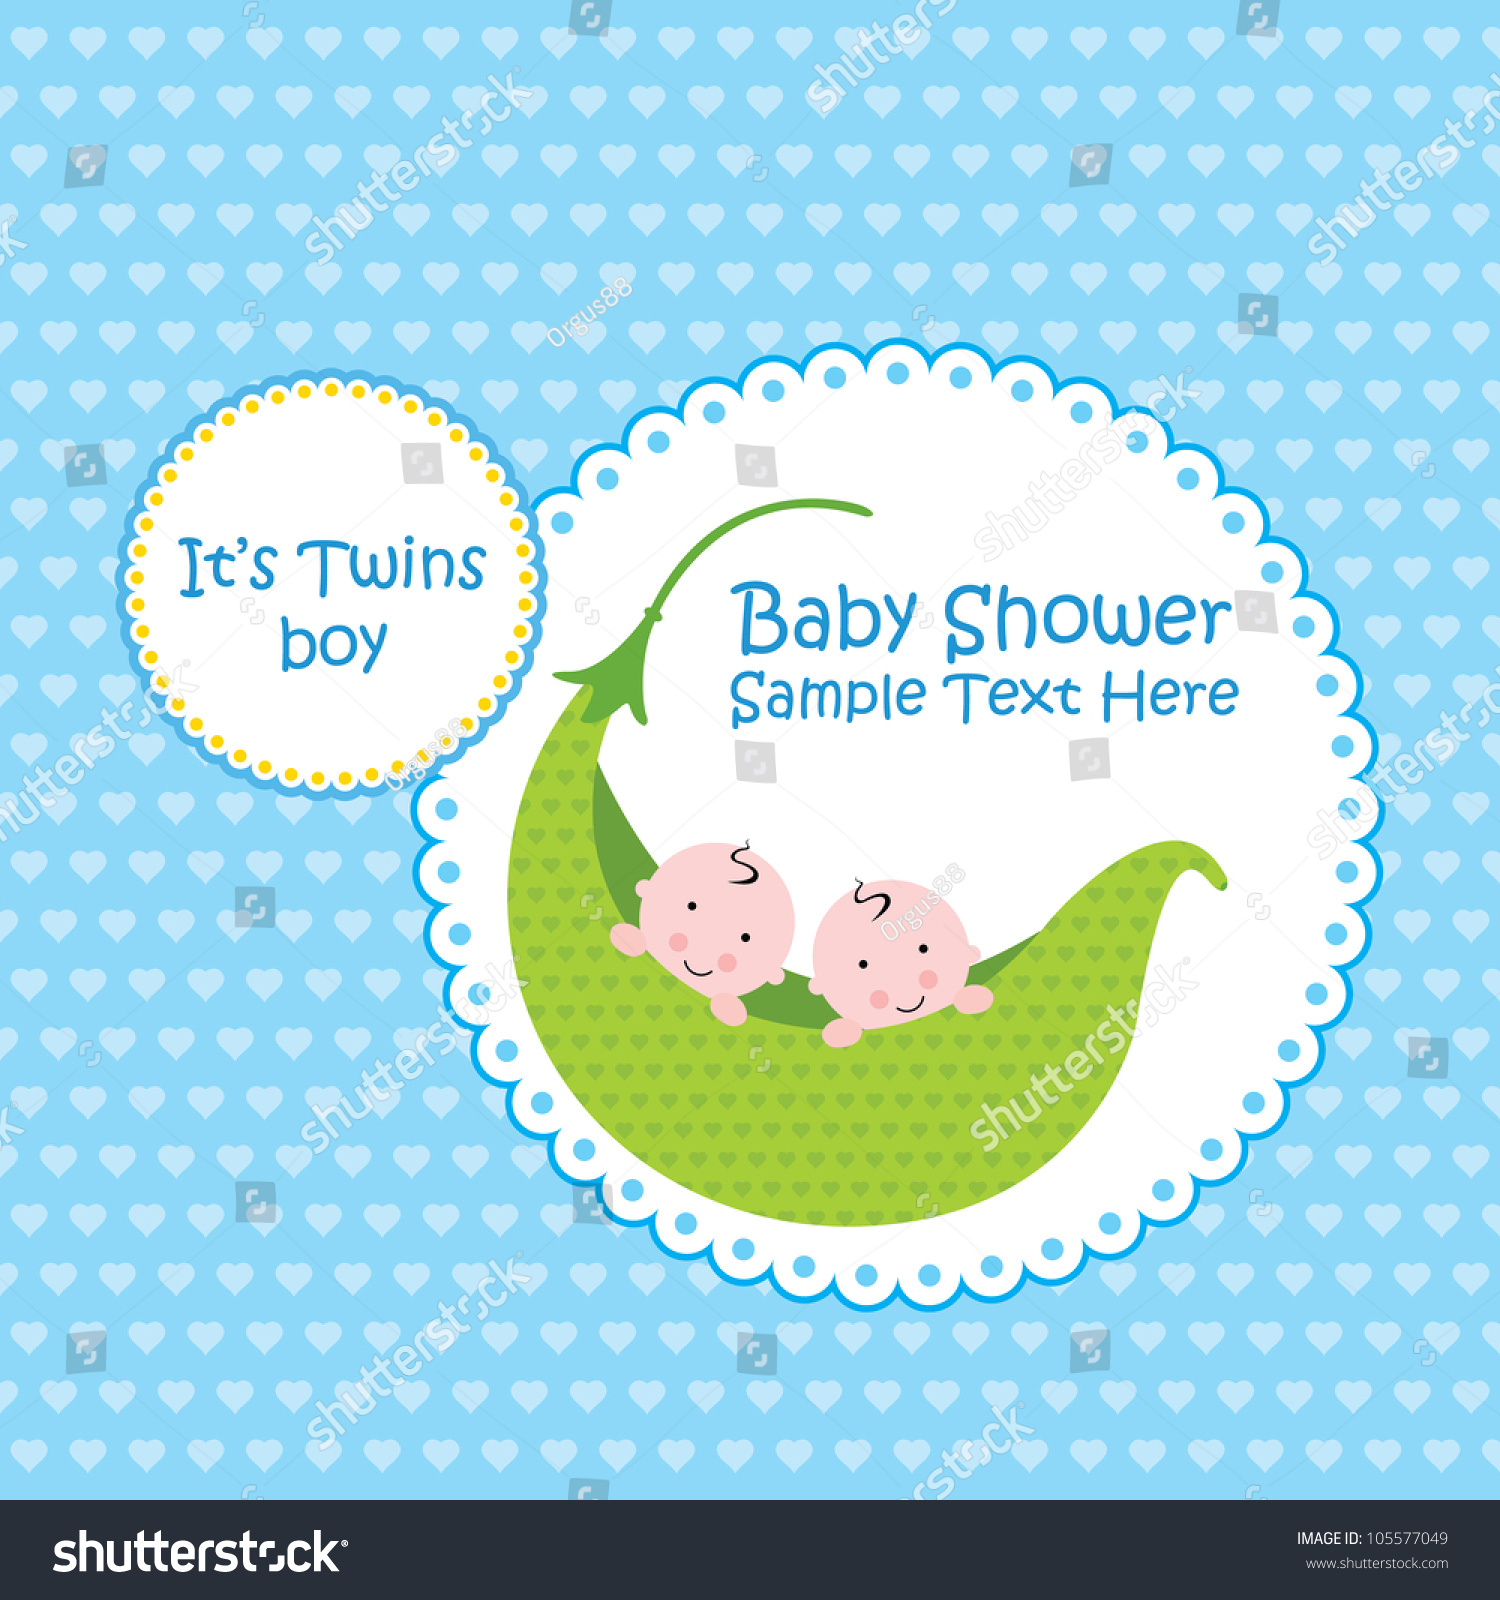 Baby boy arrival card vector by leonart image 600444 vectorstock - Baby Arrival Announcement Card Twin Baby Boy Shower Card Wallpaper Gallery Baby Boy Shower